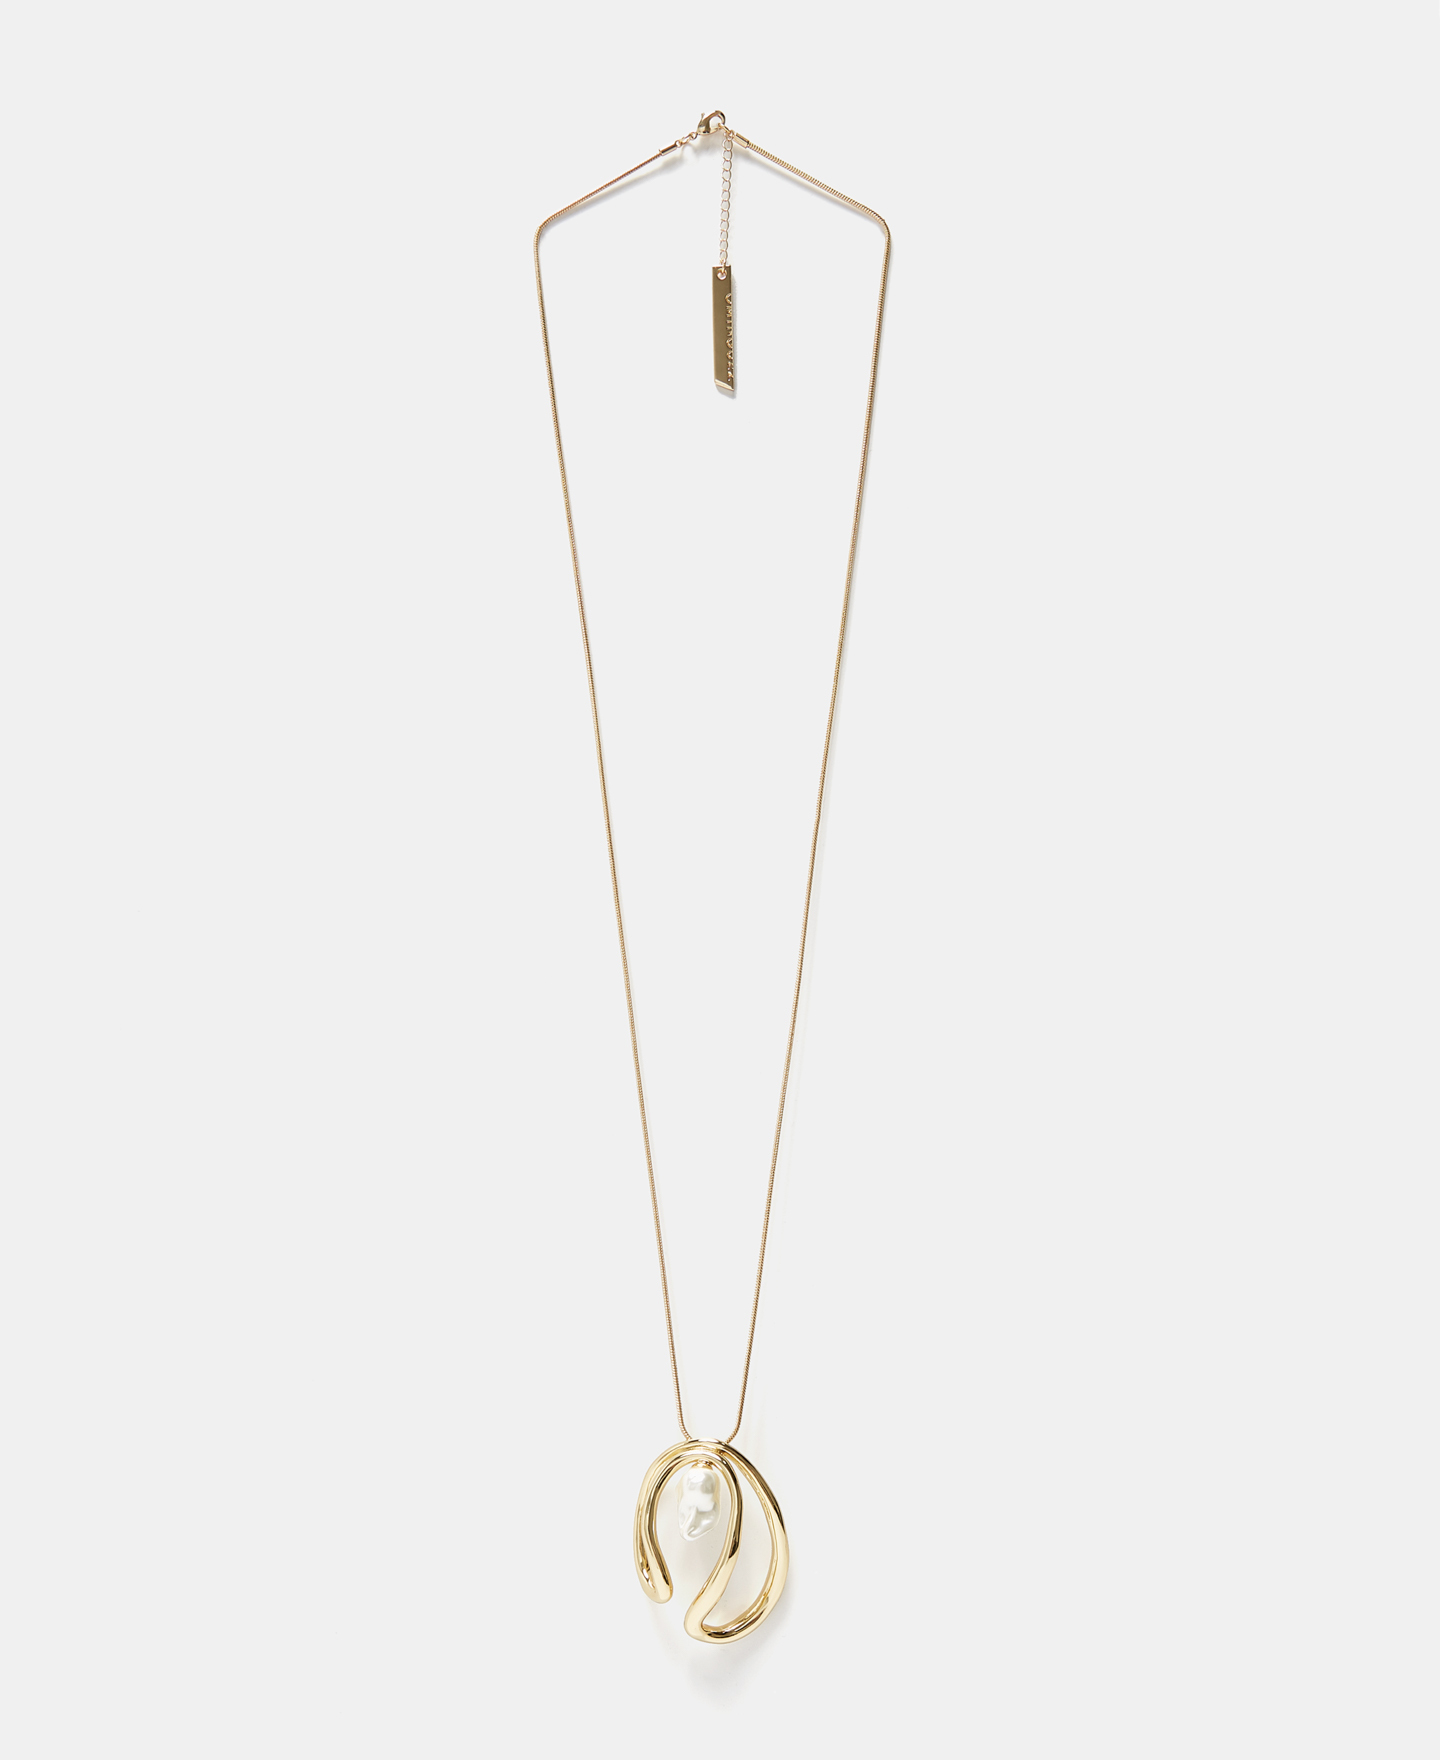 CIRCULAR SHAPE NECKLACE WITH RESIN PEARL [226583029111]